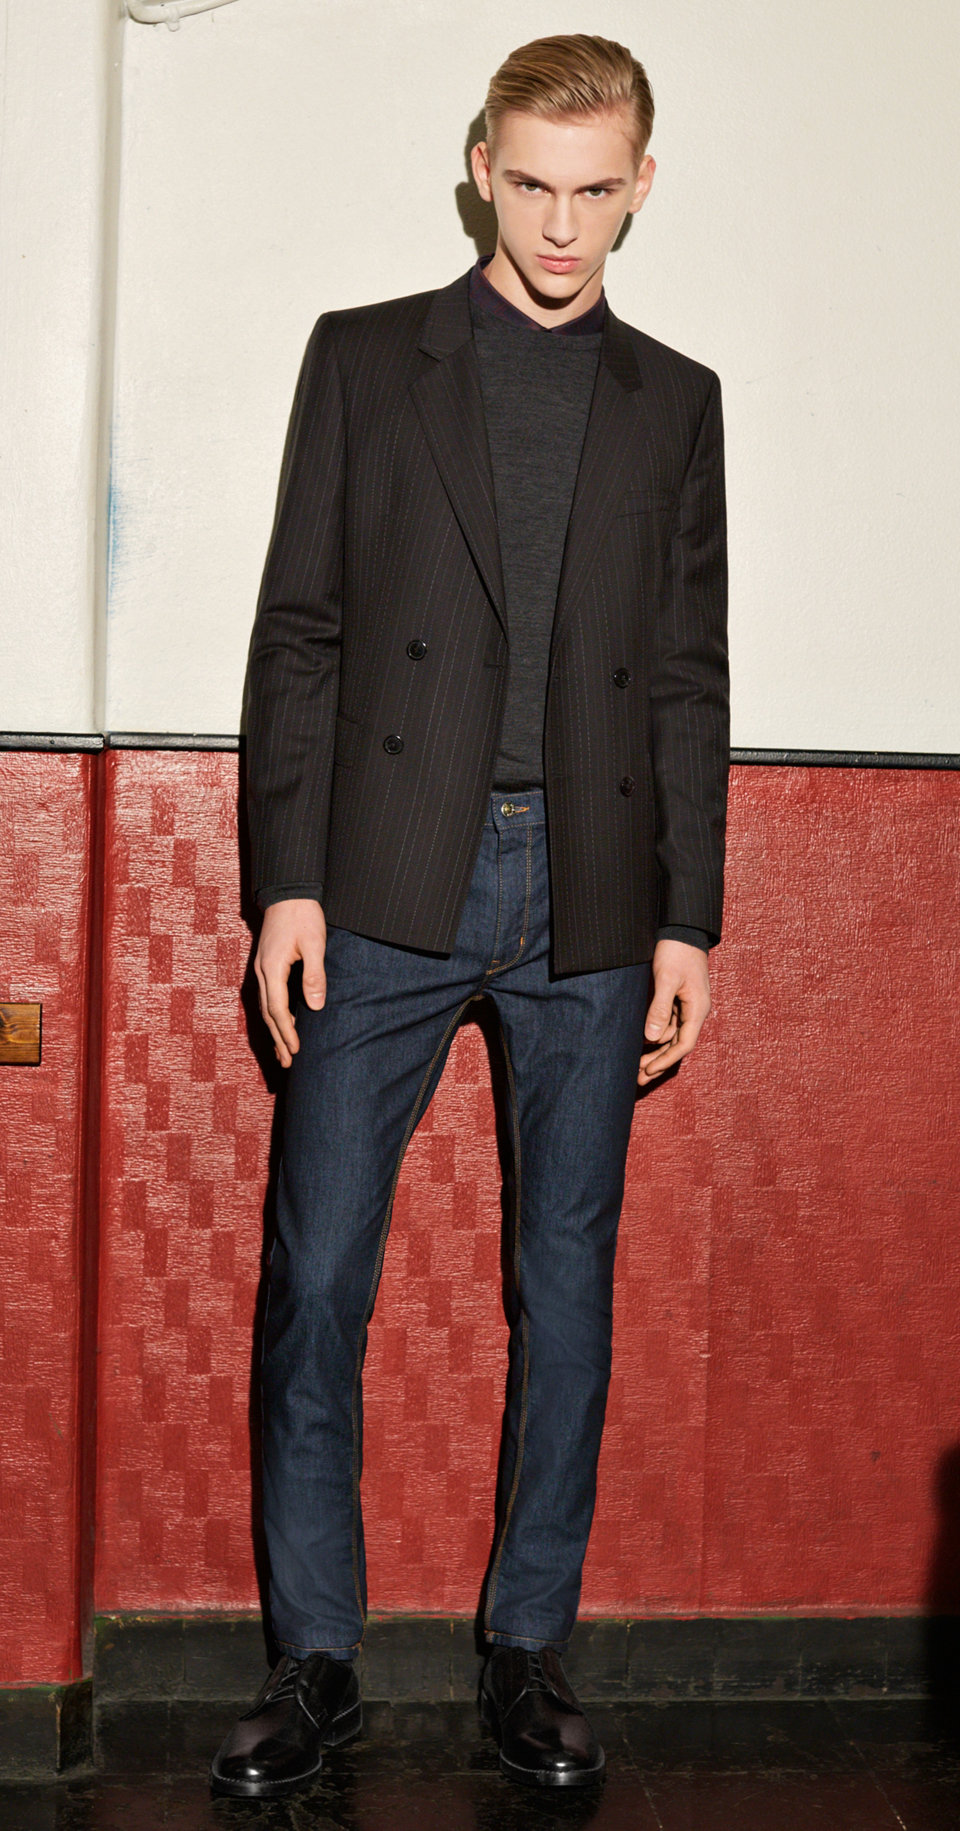 Black Jacket, grey shirt, grey knitwear, Jeans and shoes by HUGO